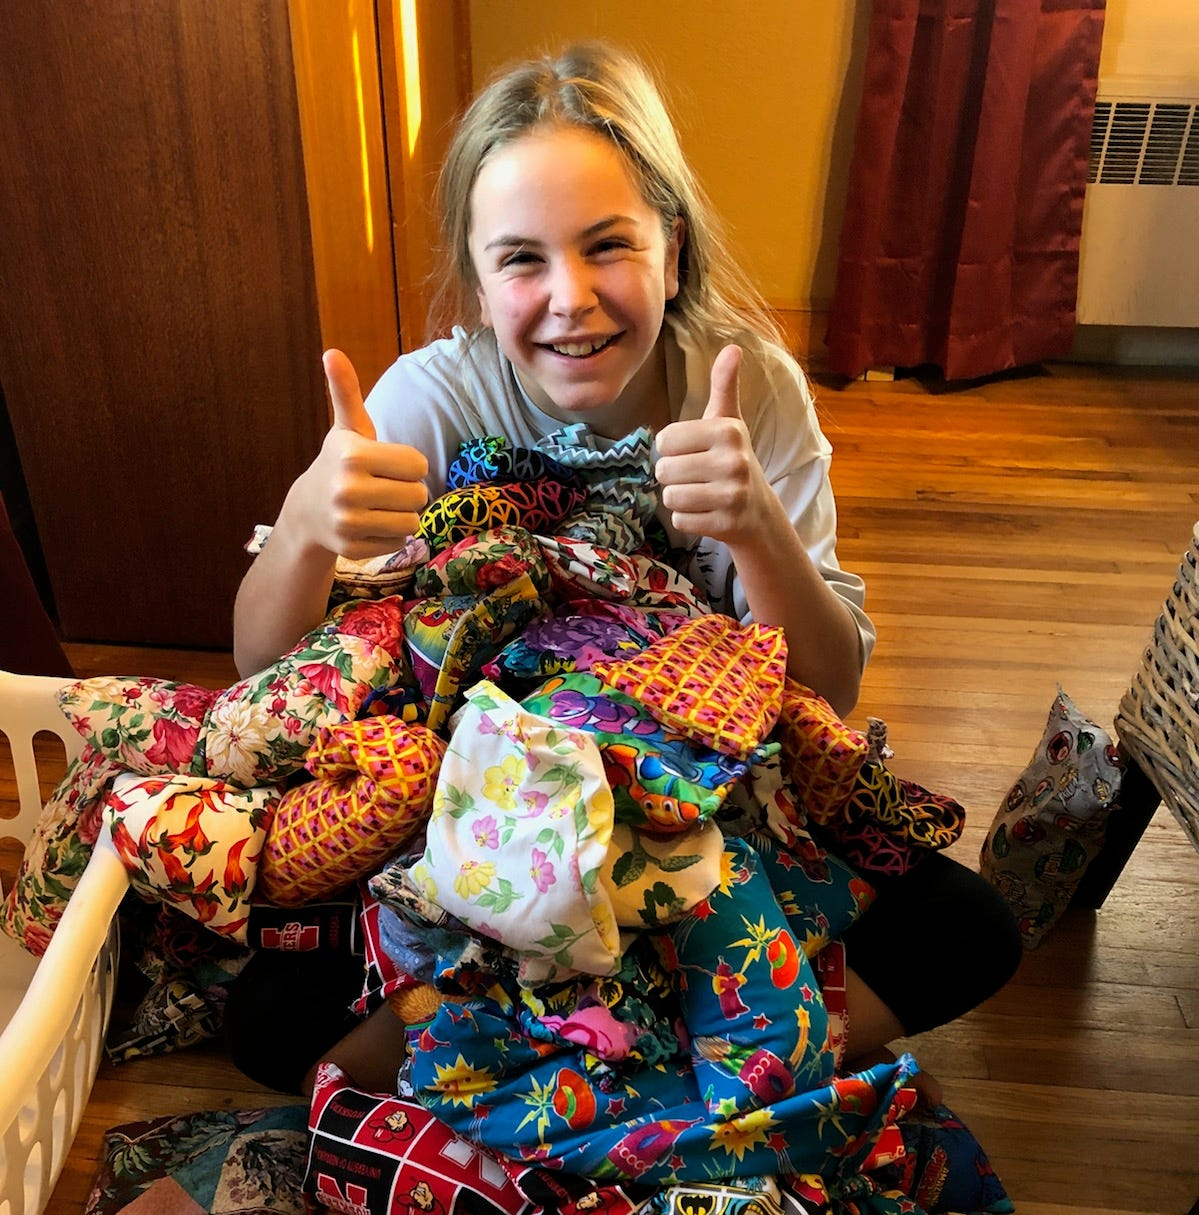 Highlights: A 10-year-old fights anxiety by starting her own business; Siouxland Libraries becomes kid-centric